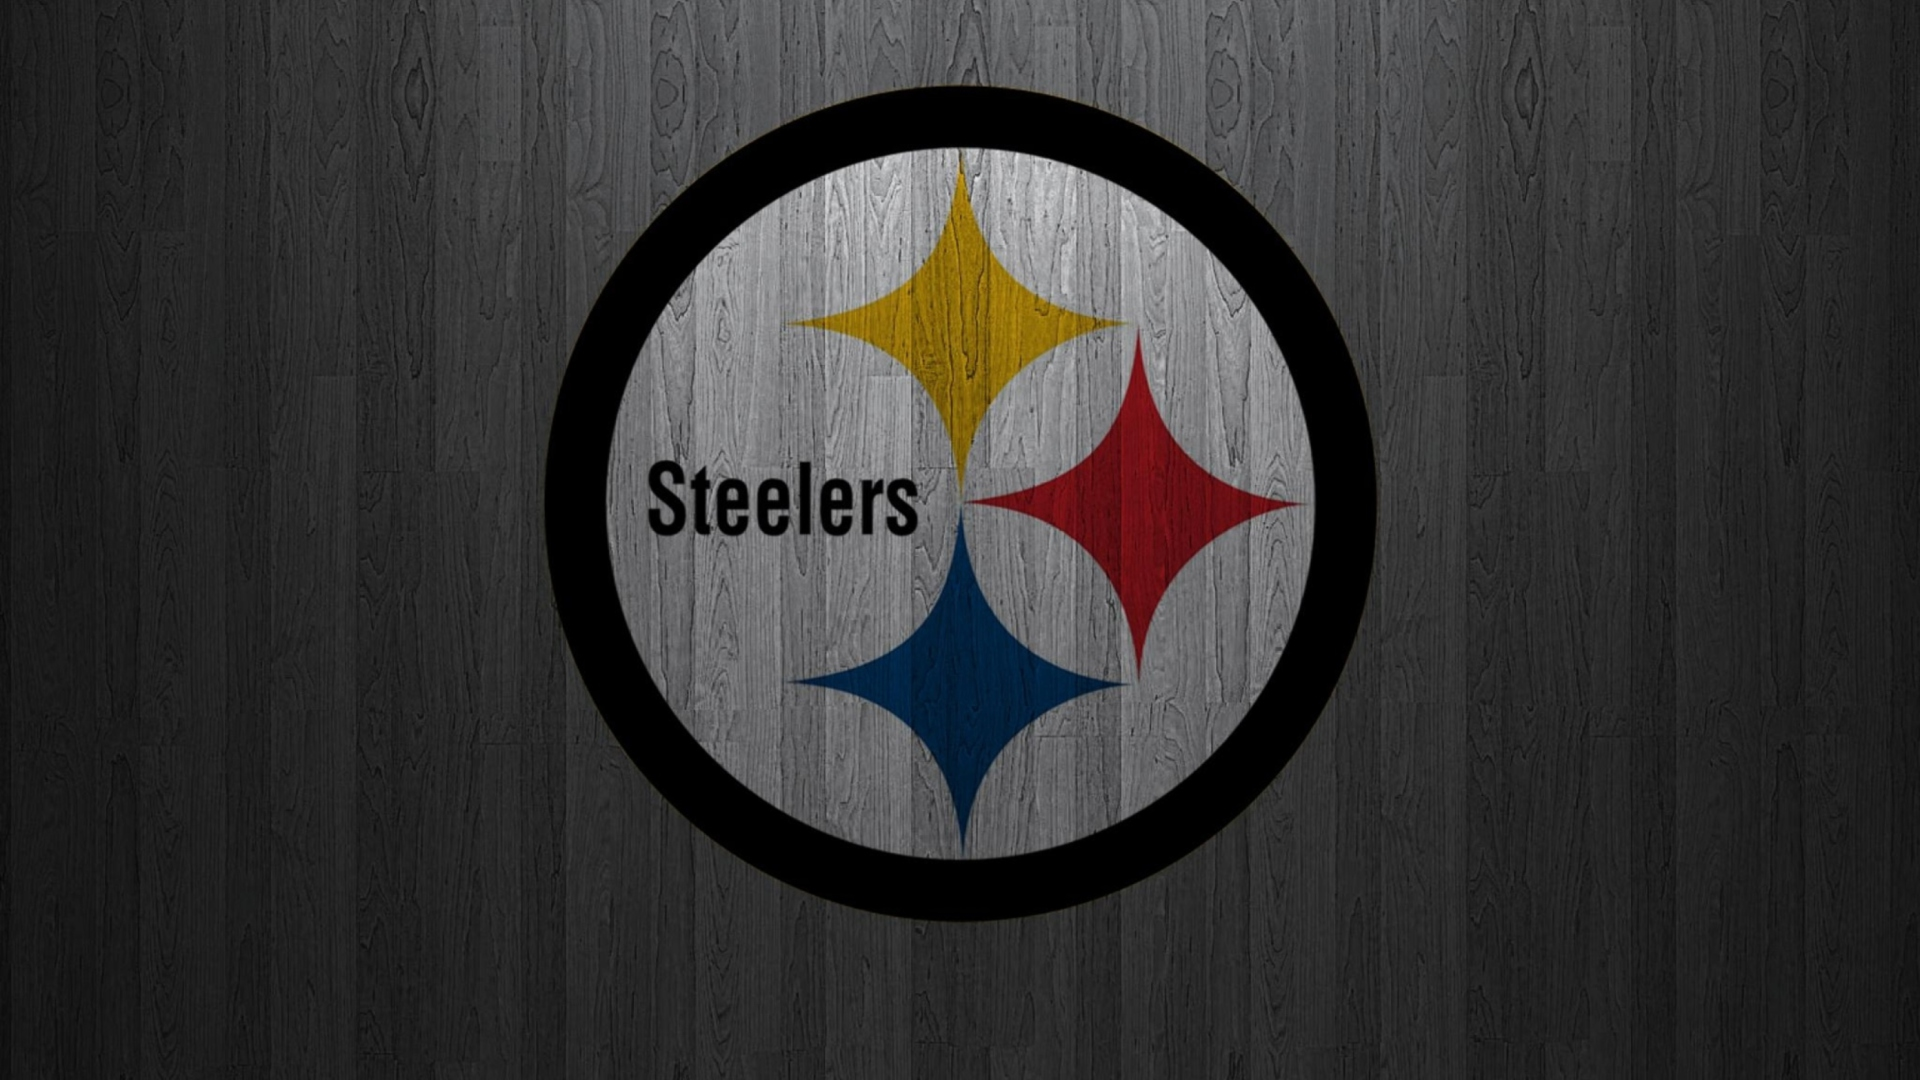 1920x1080 - Steelers Desktop 4